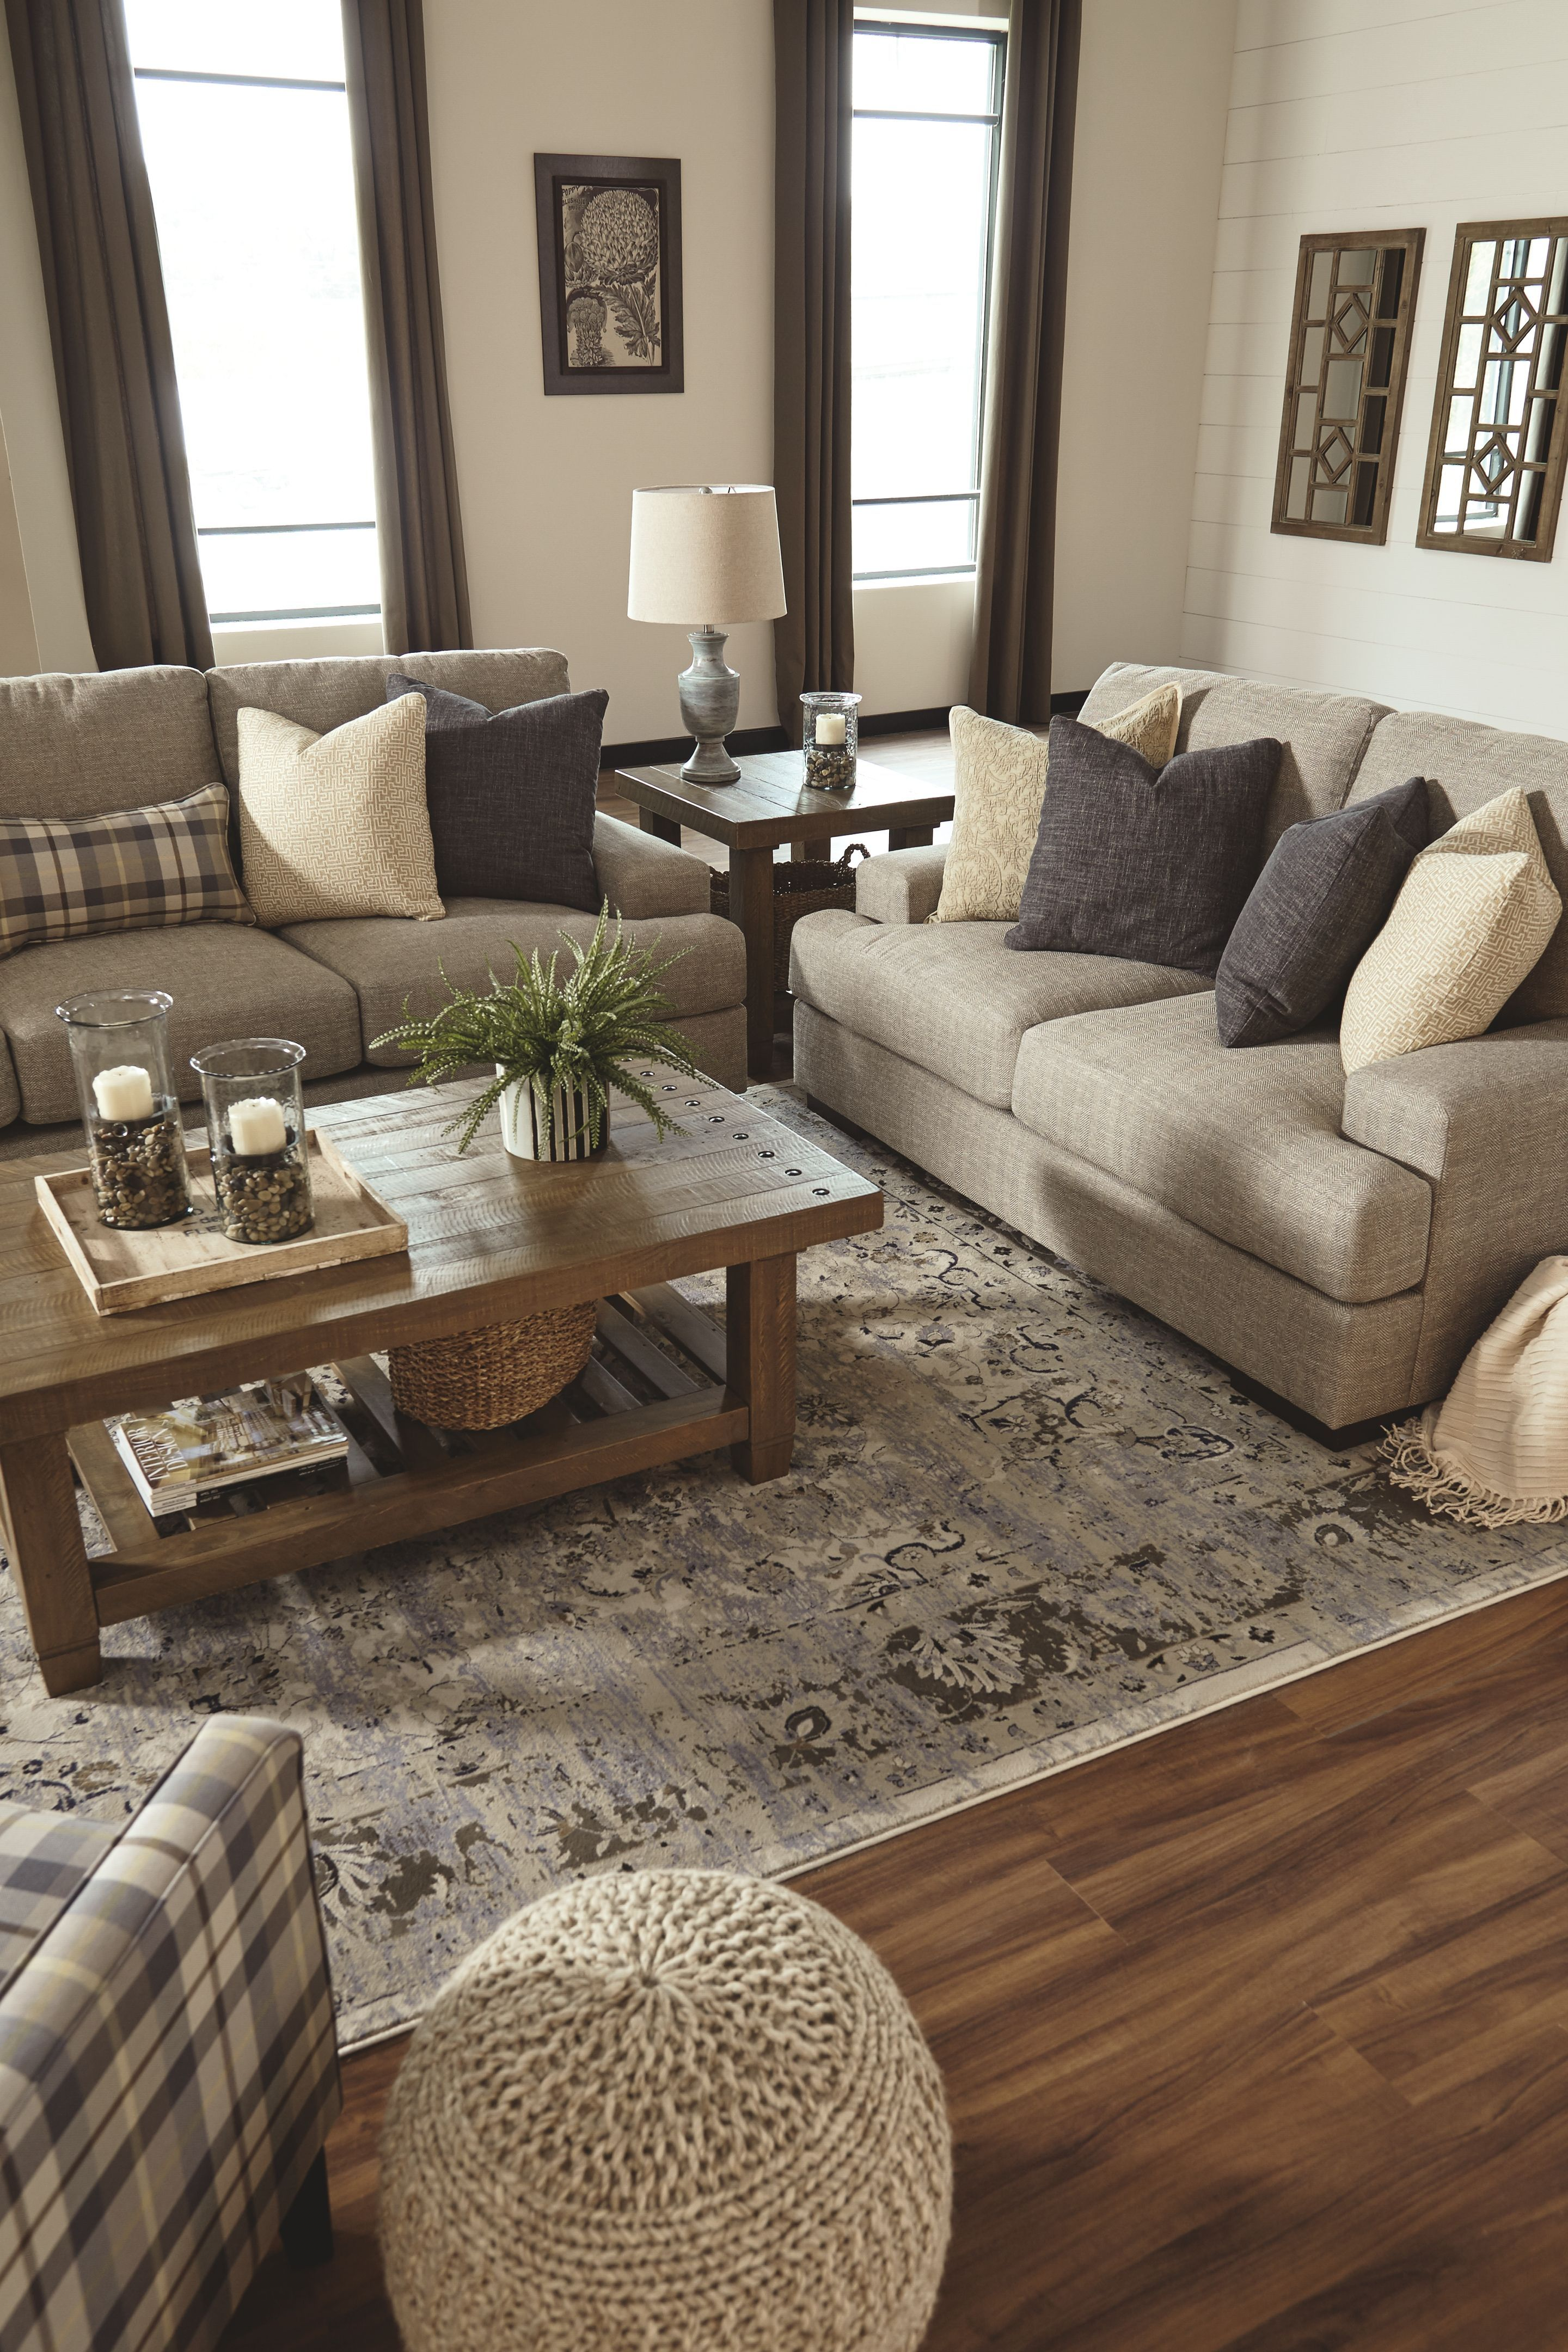 Find Ideas To Bring Patterns Prints Colors Textures And More Design Elements Together To White Living Room Decor Farm House Living Room Living Room Remodel